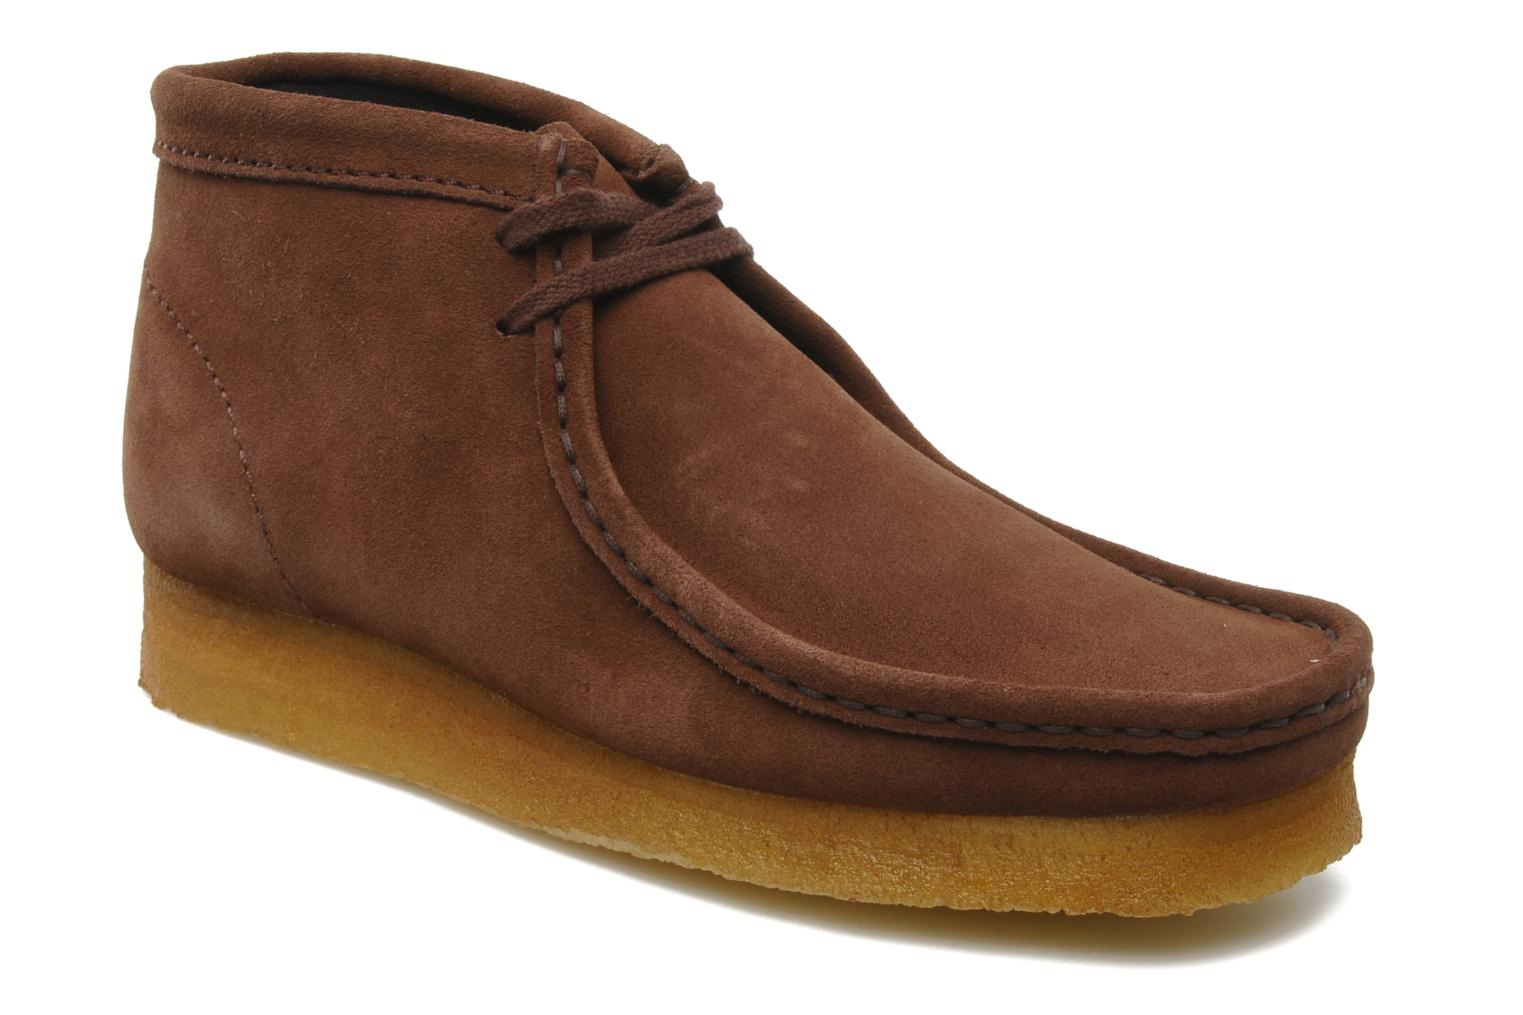 Clarks Wallabee Boot Sde Beige - Chaussures Boot Homme